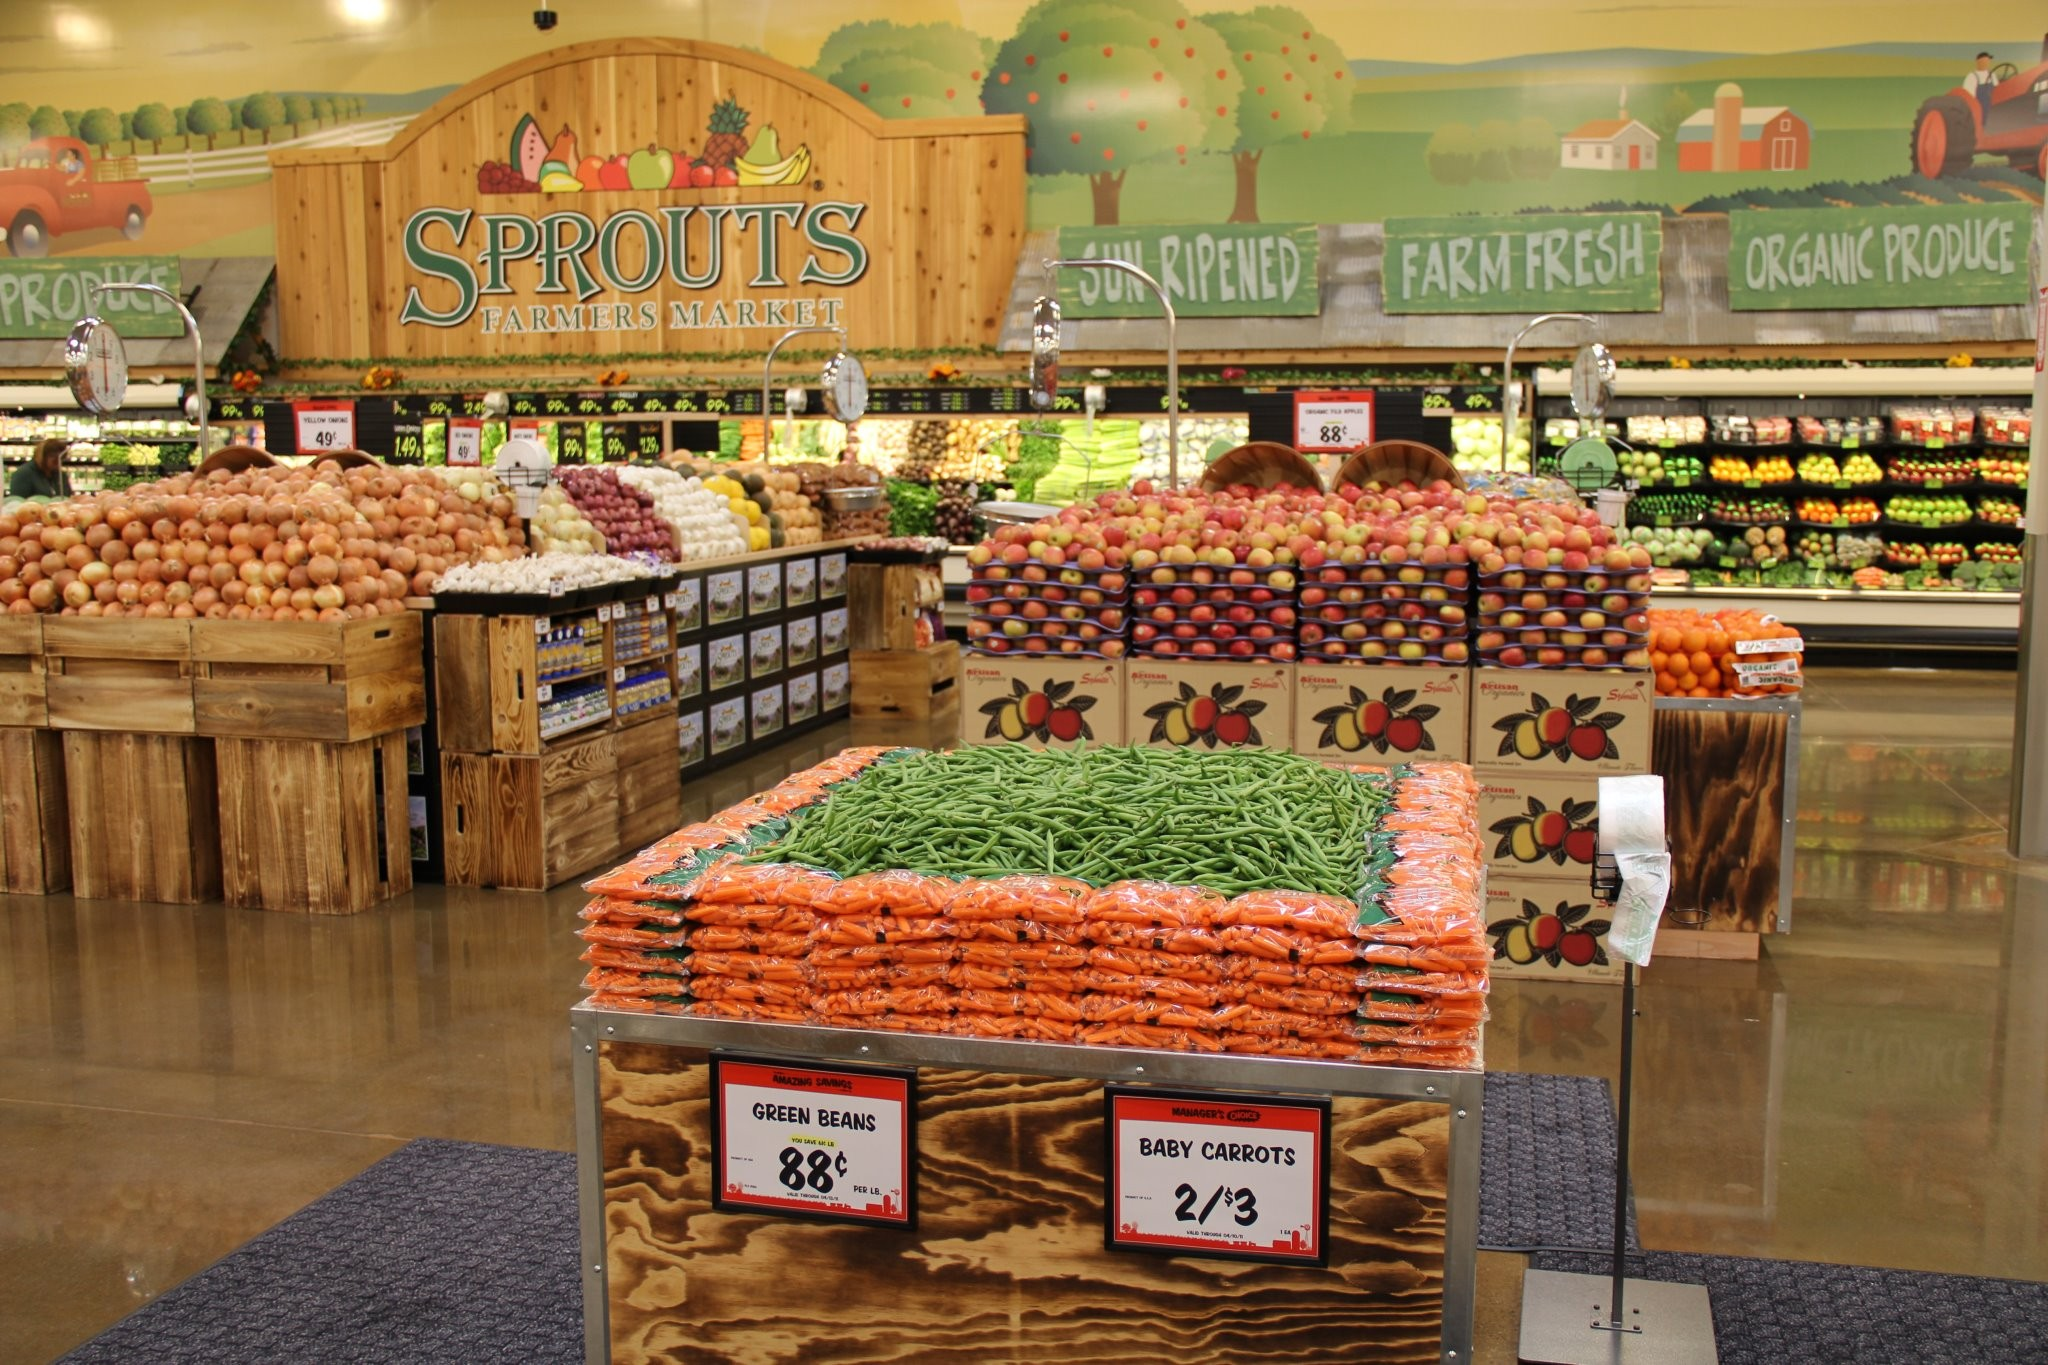 Sprouts Farmers Market will open a new location in Oviedo